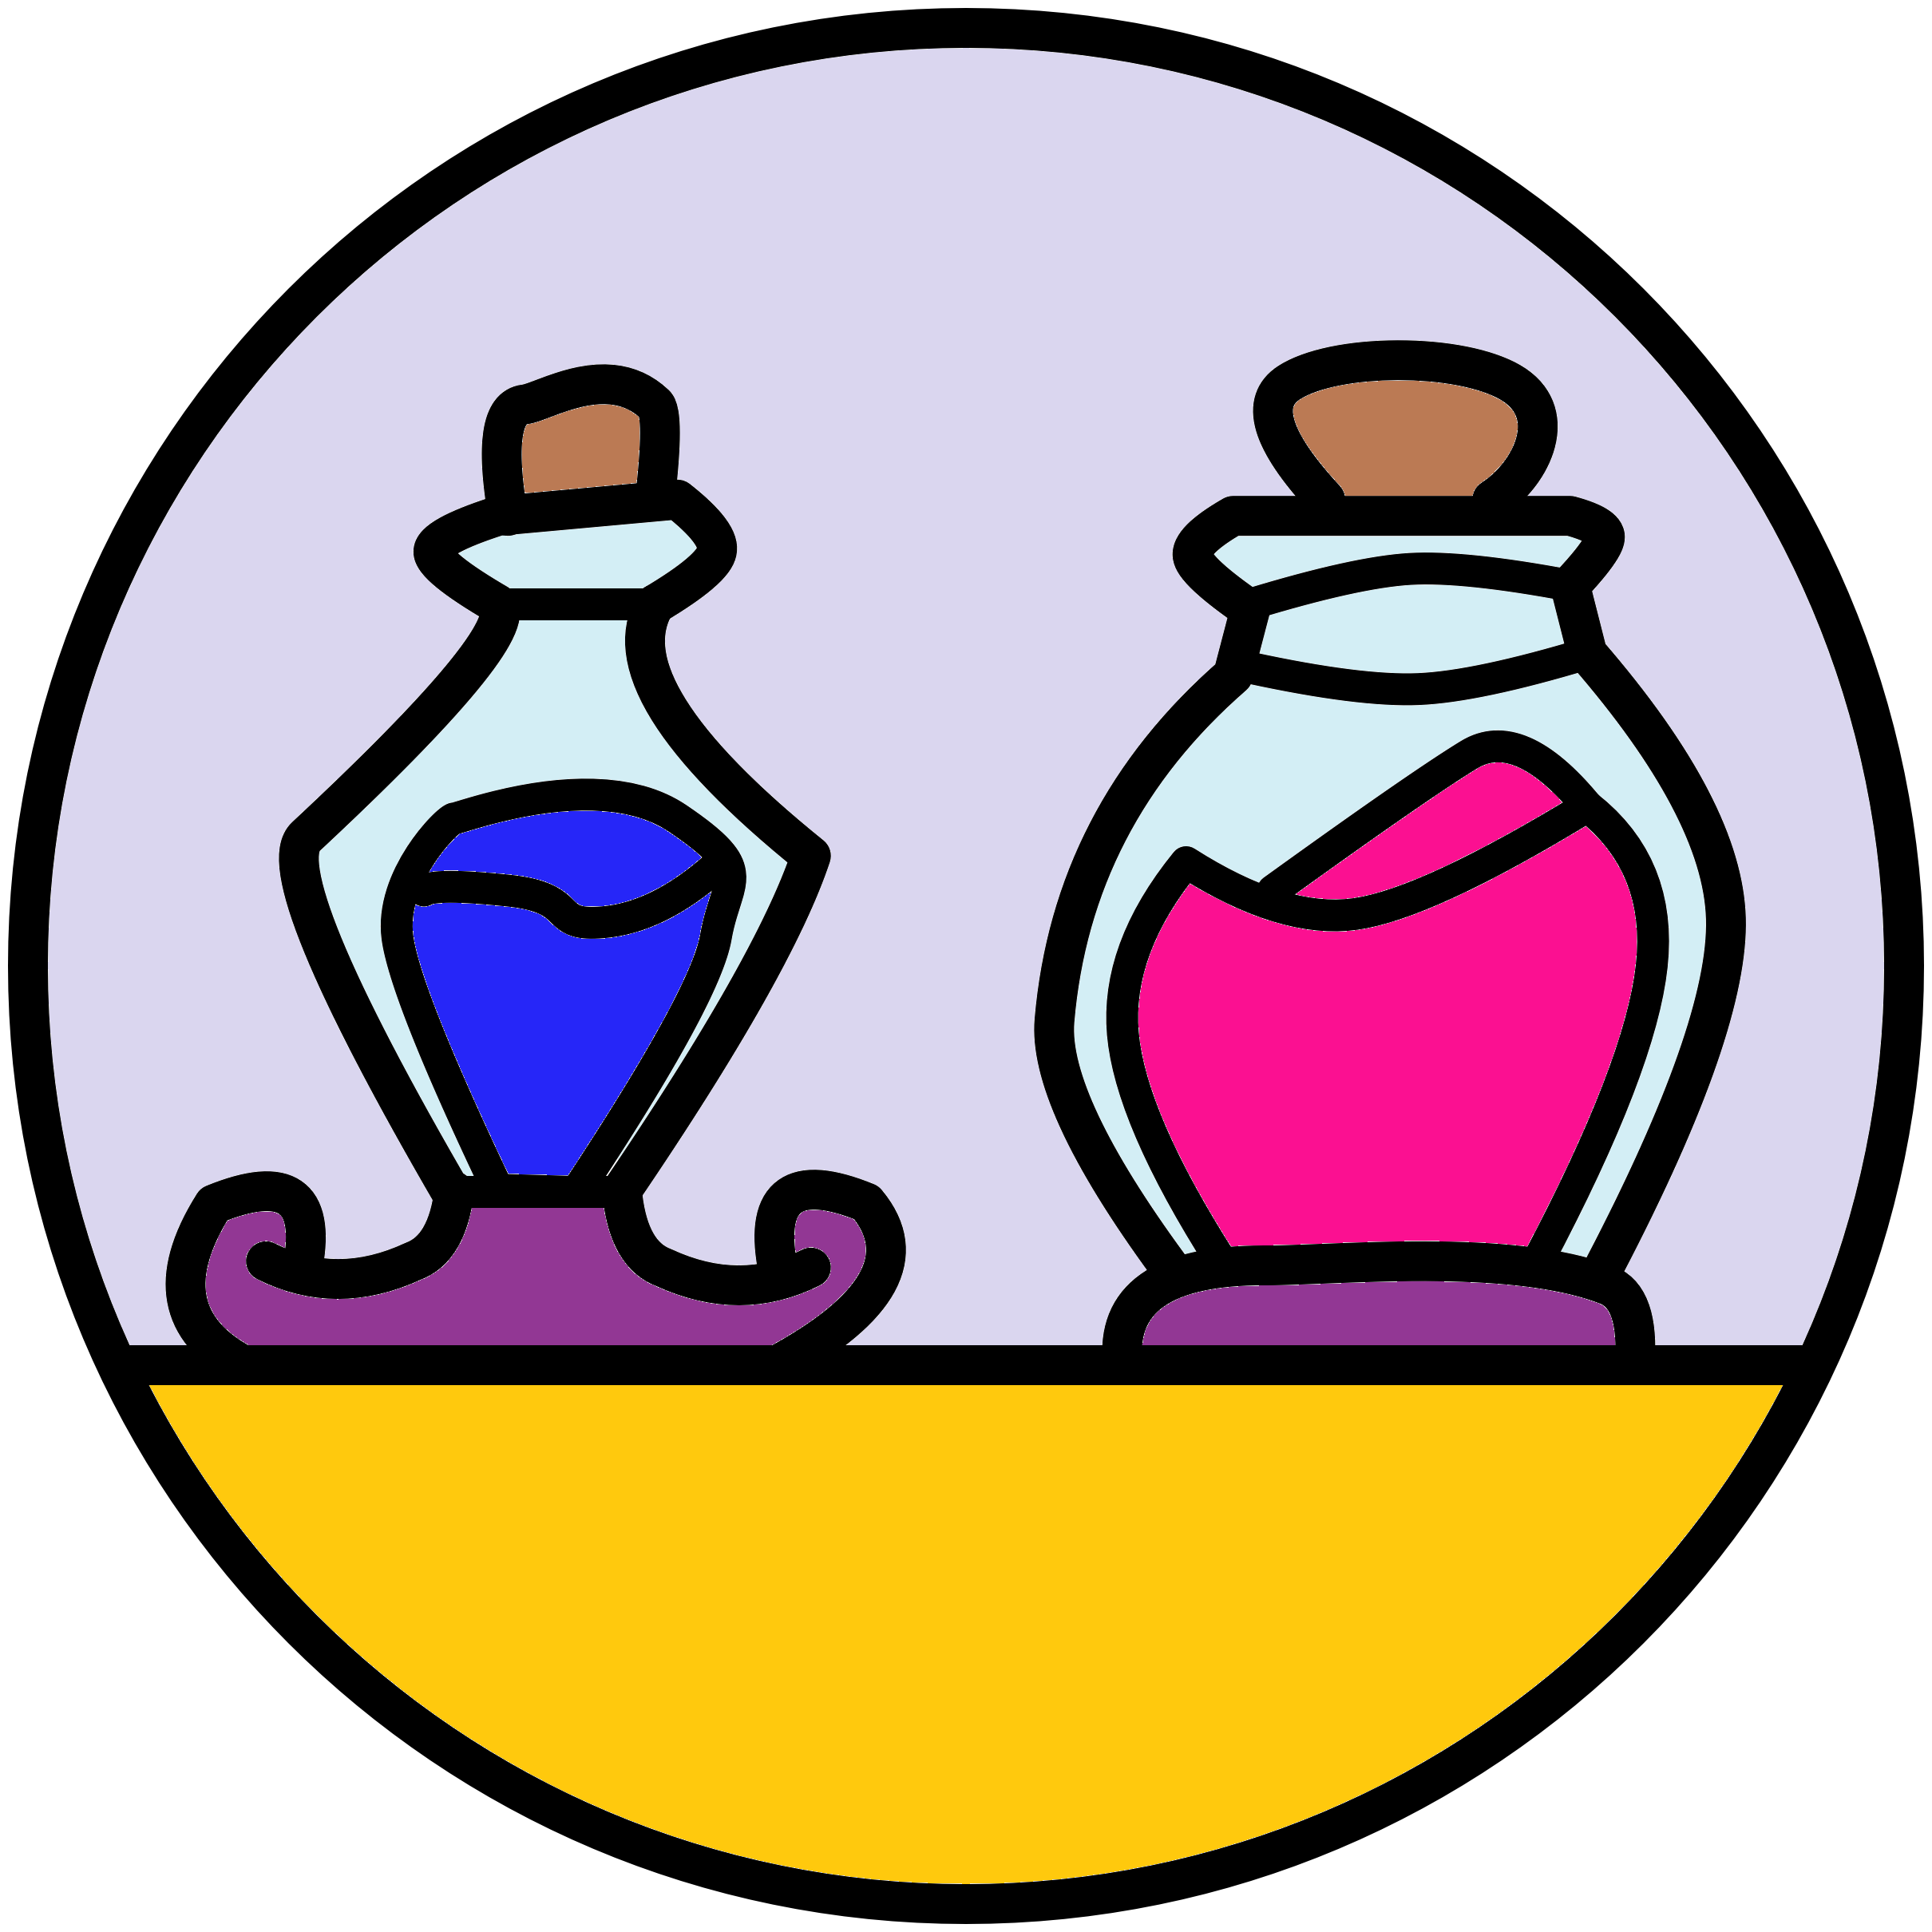 The potions symbolises how to refine your startup idea